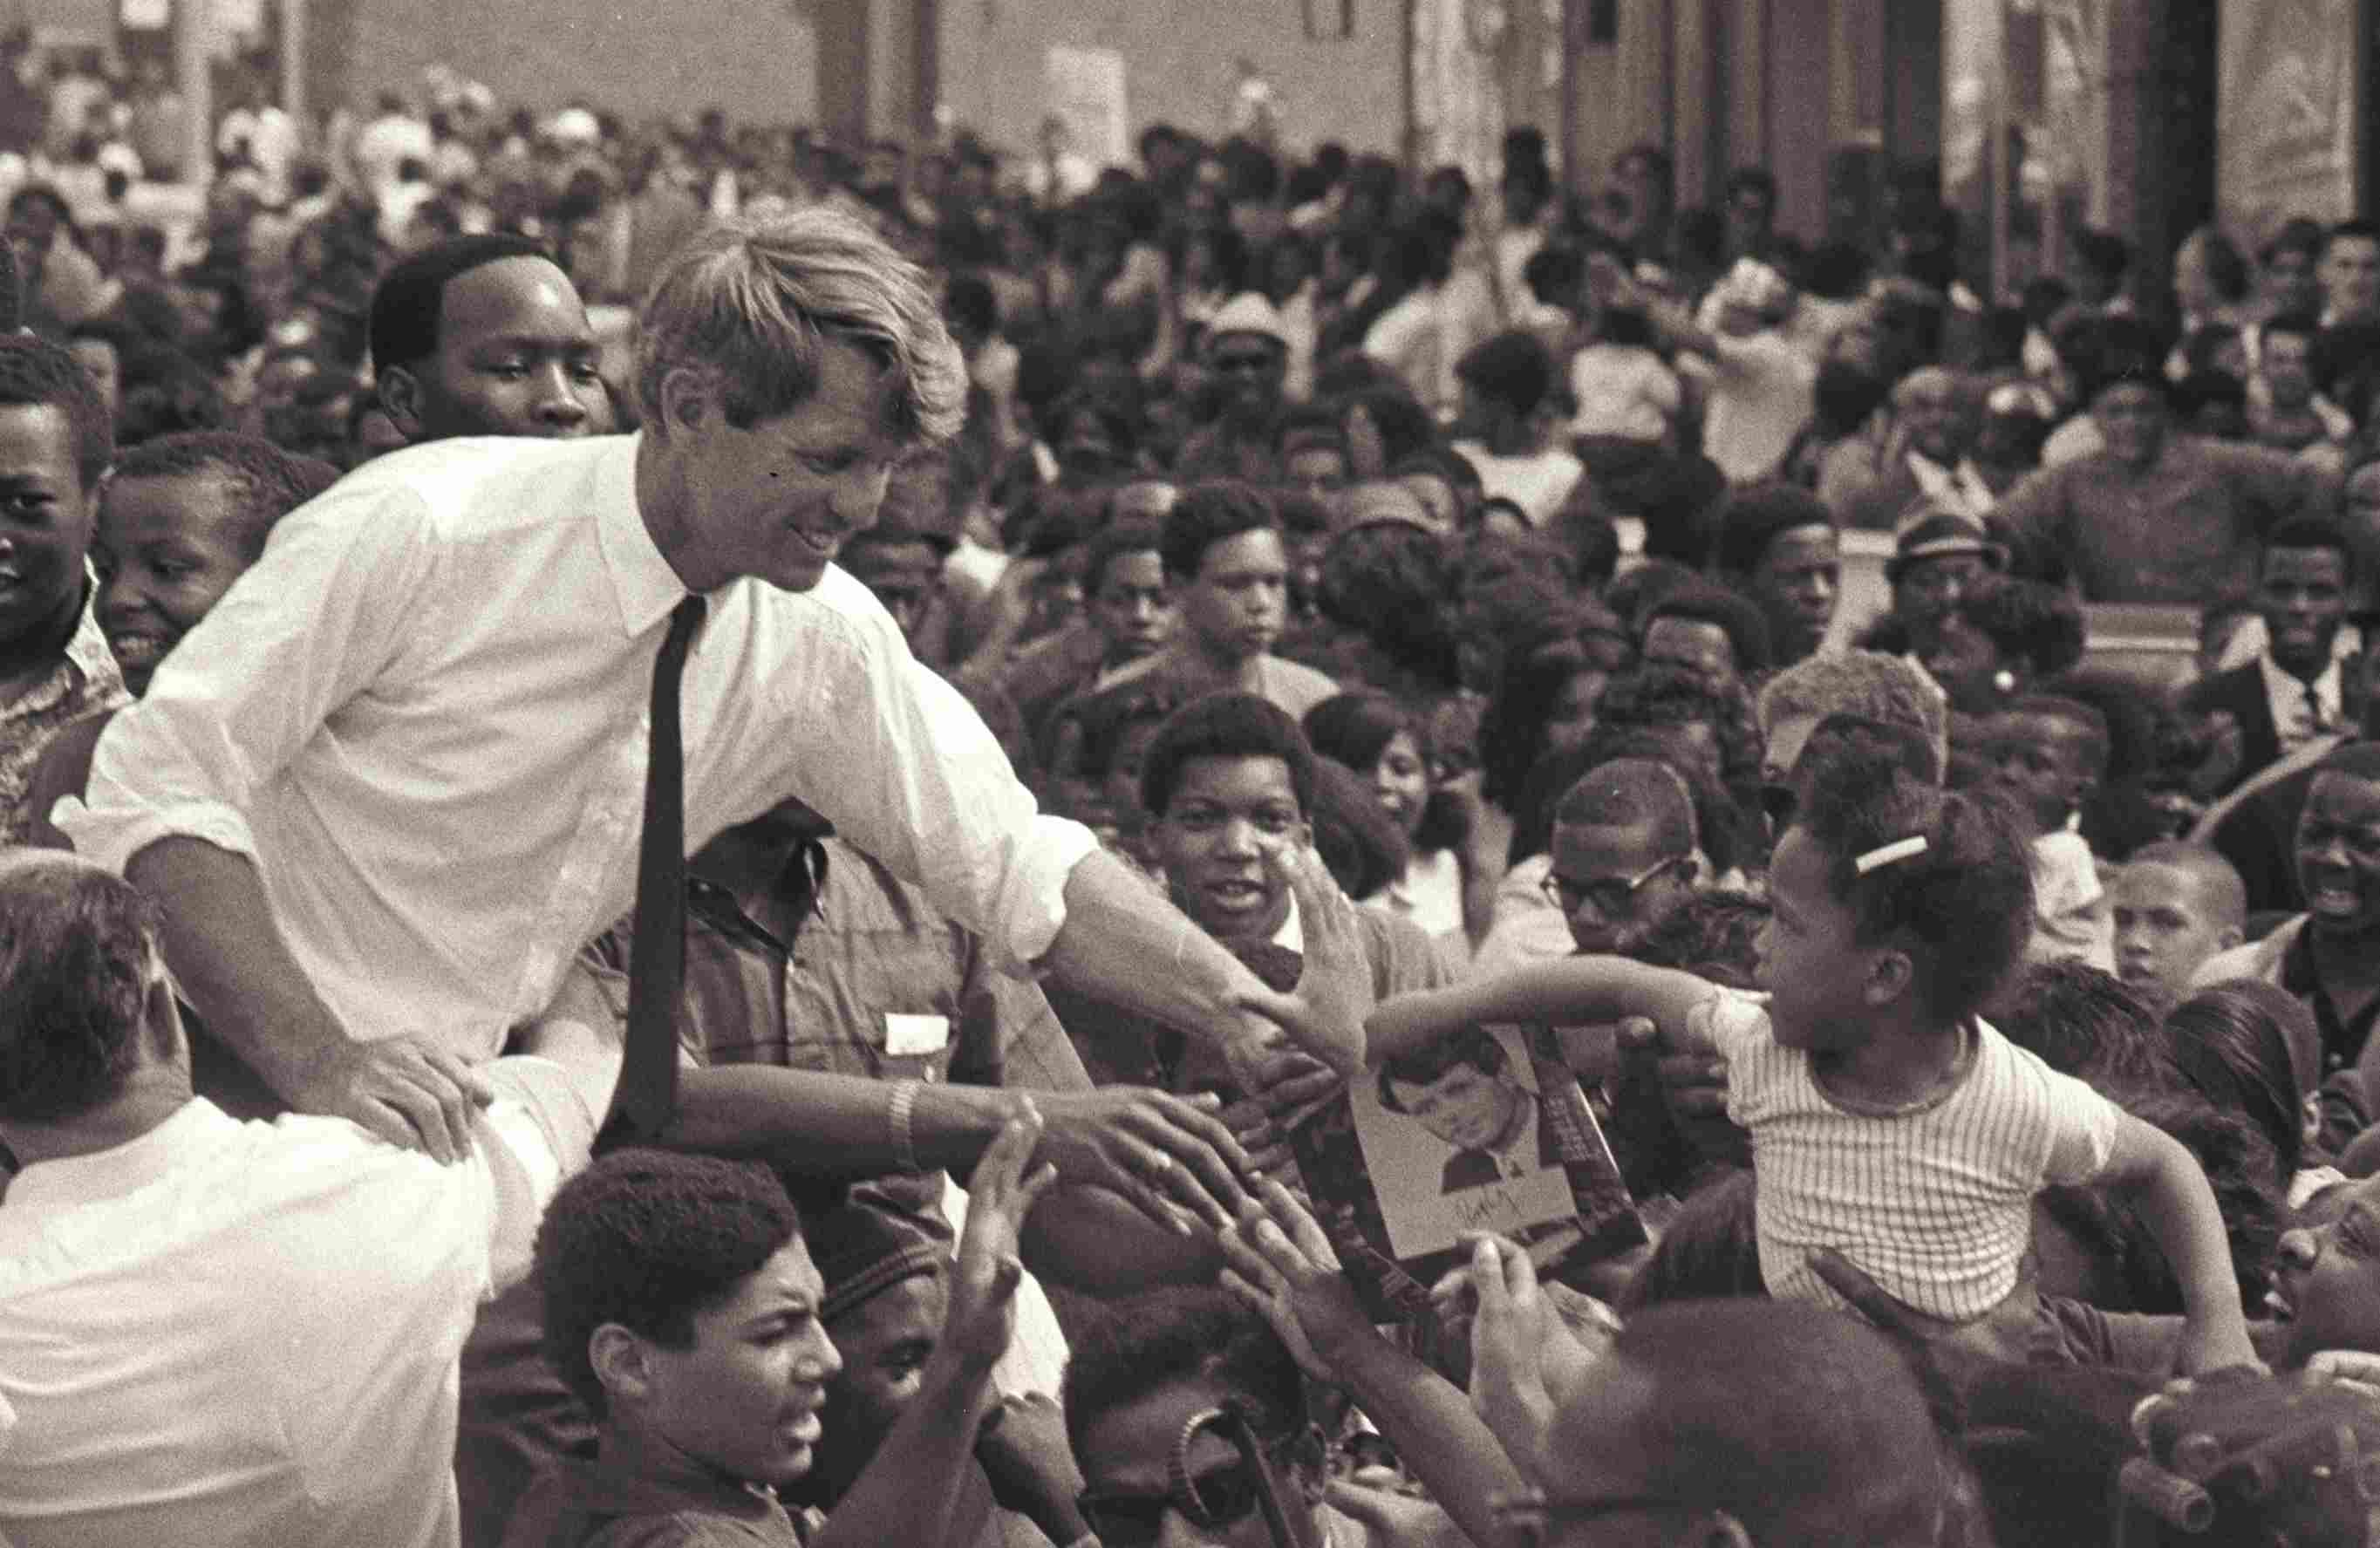 photograph of Robert F. Kennedy campaigning in 1968